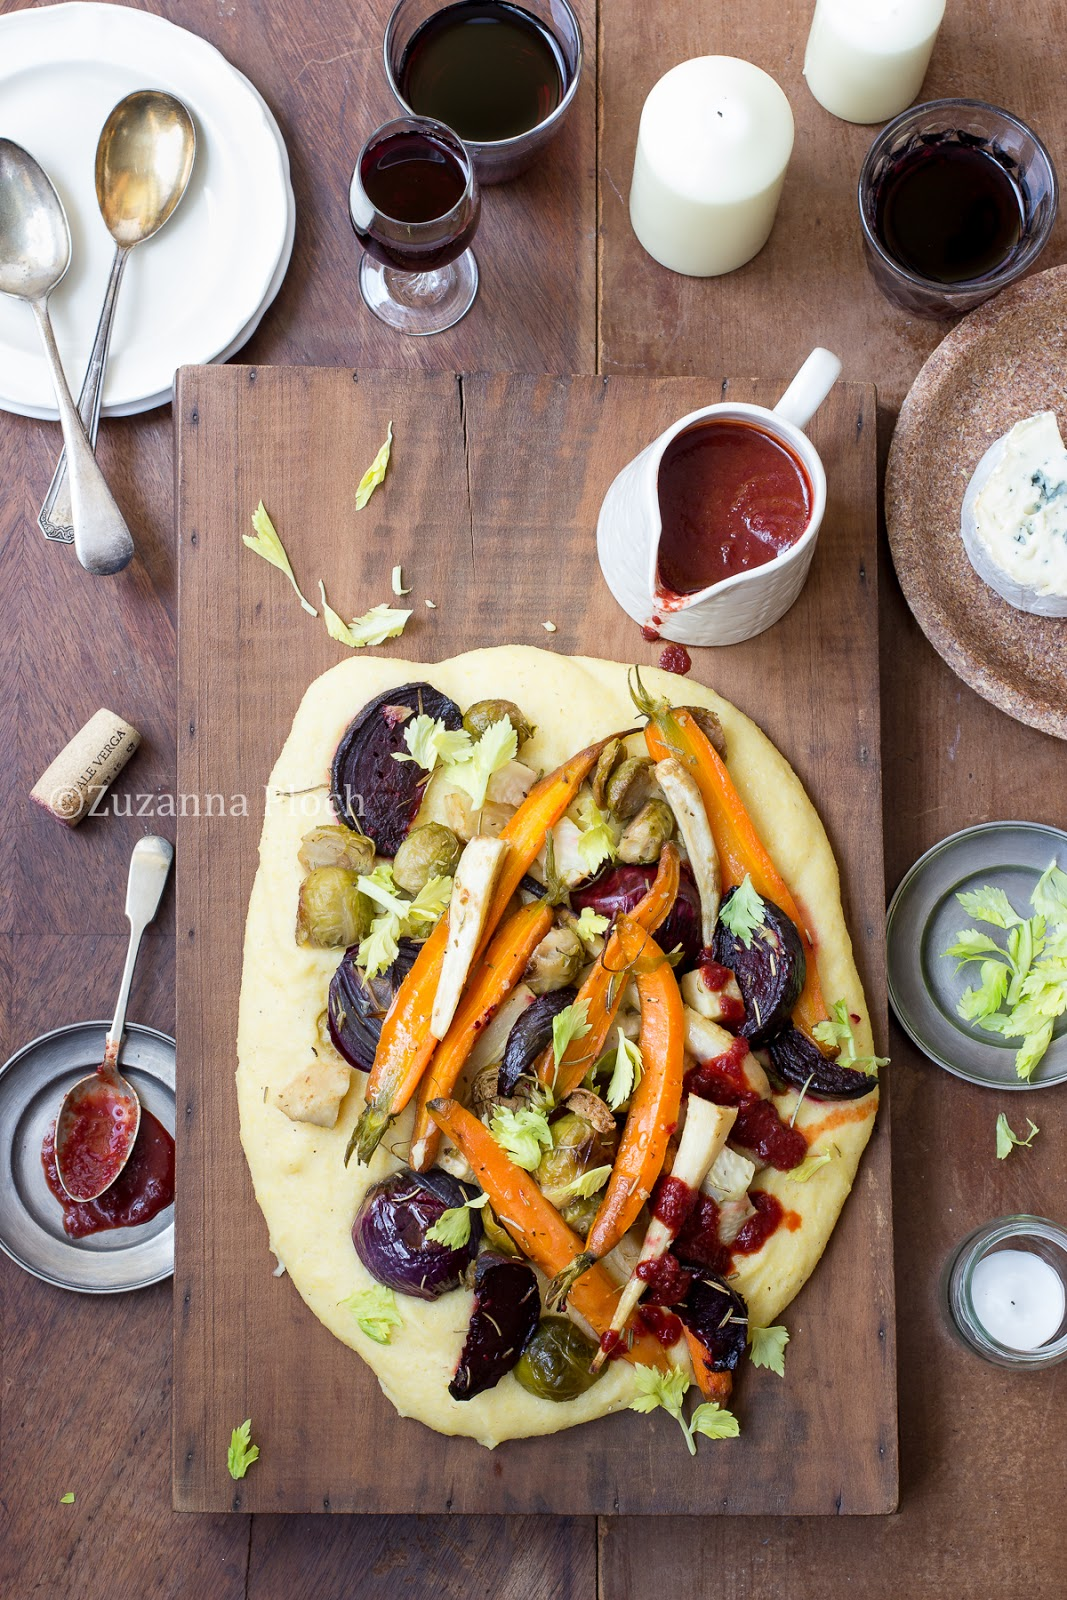 vegetables on cheesy polenta - food photography by Zuzanna Ploch, fotografia kulinarna